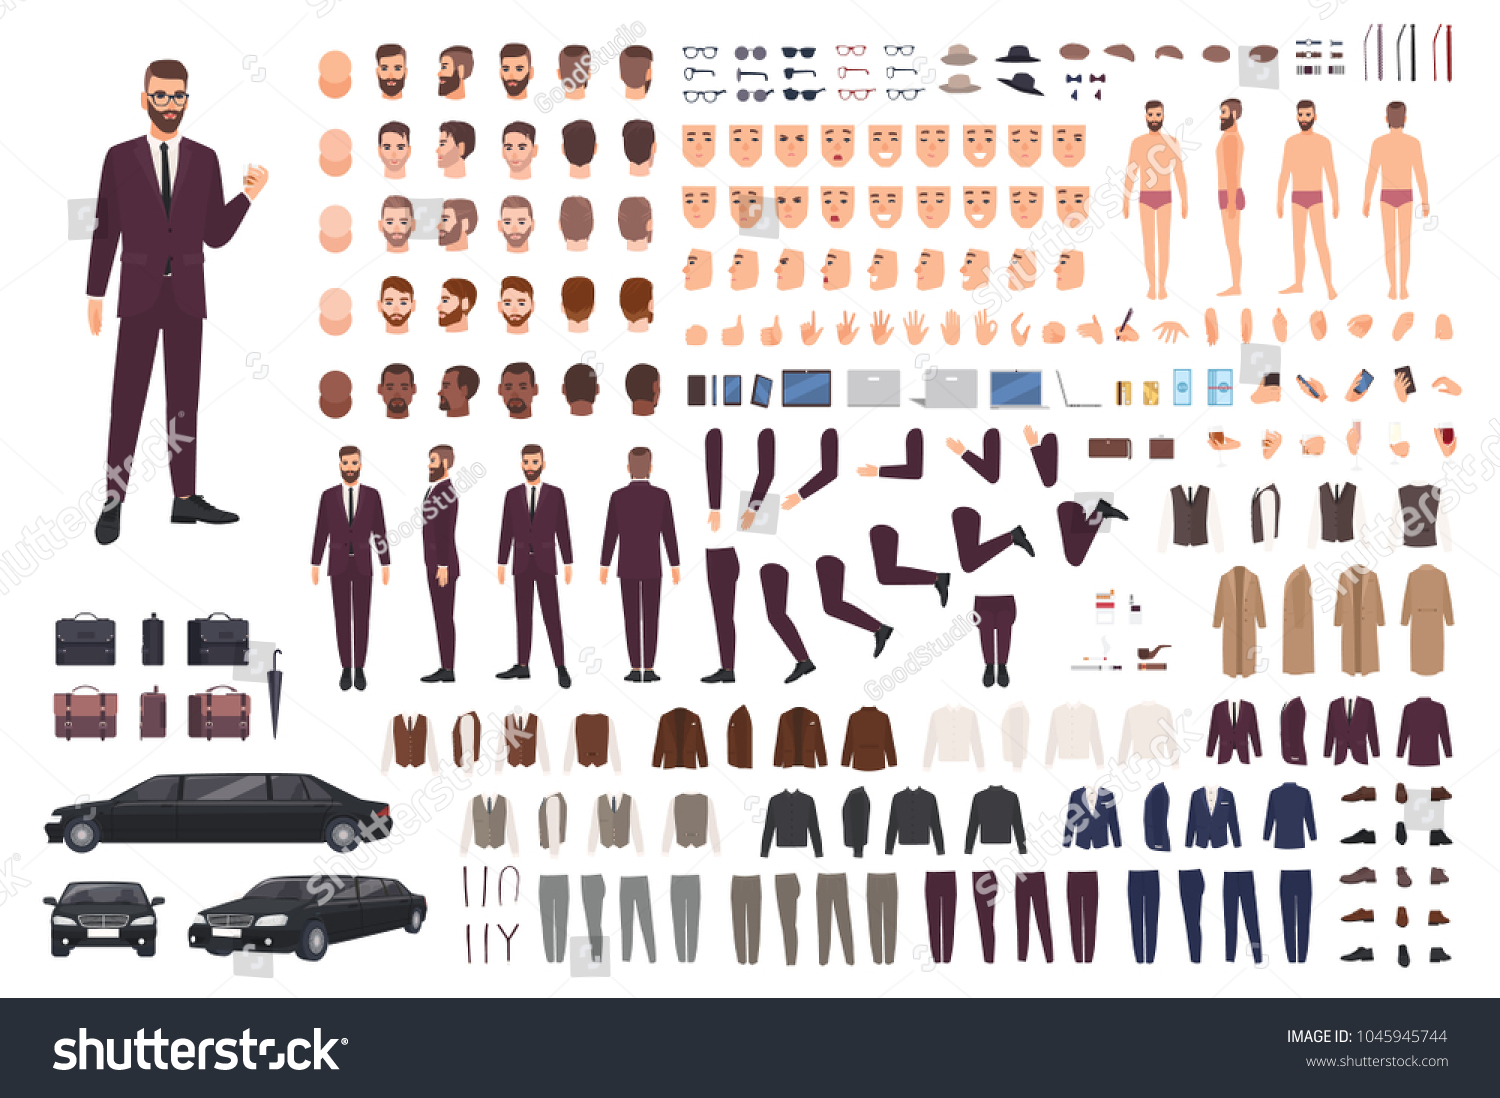 create your own businessman character kit